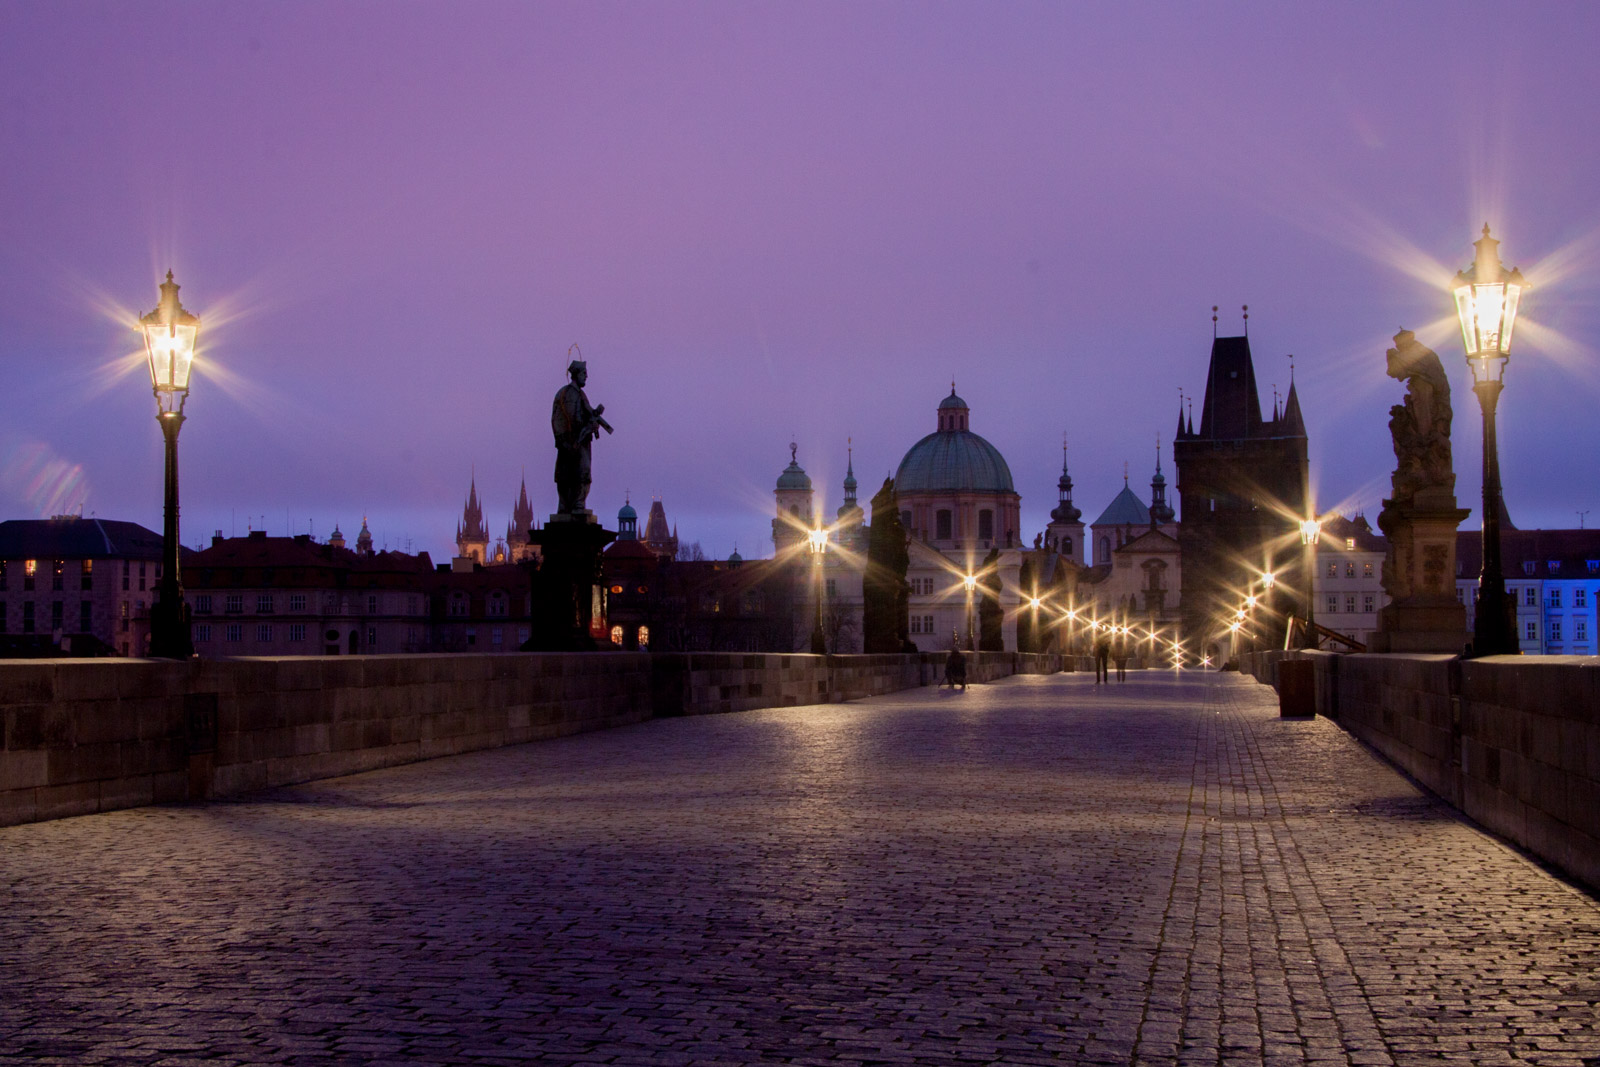 morning - charles bridge